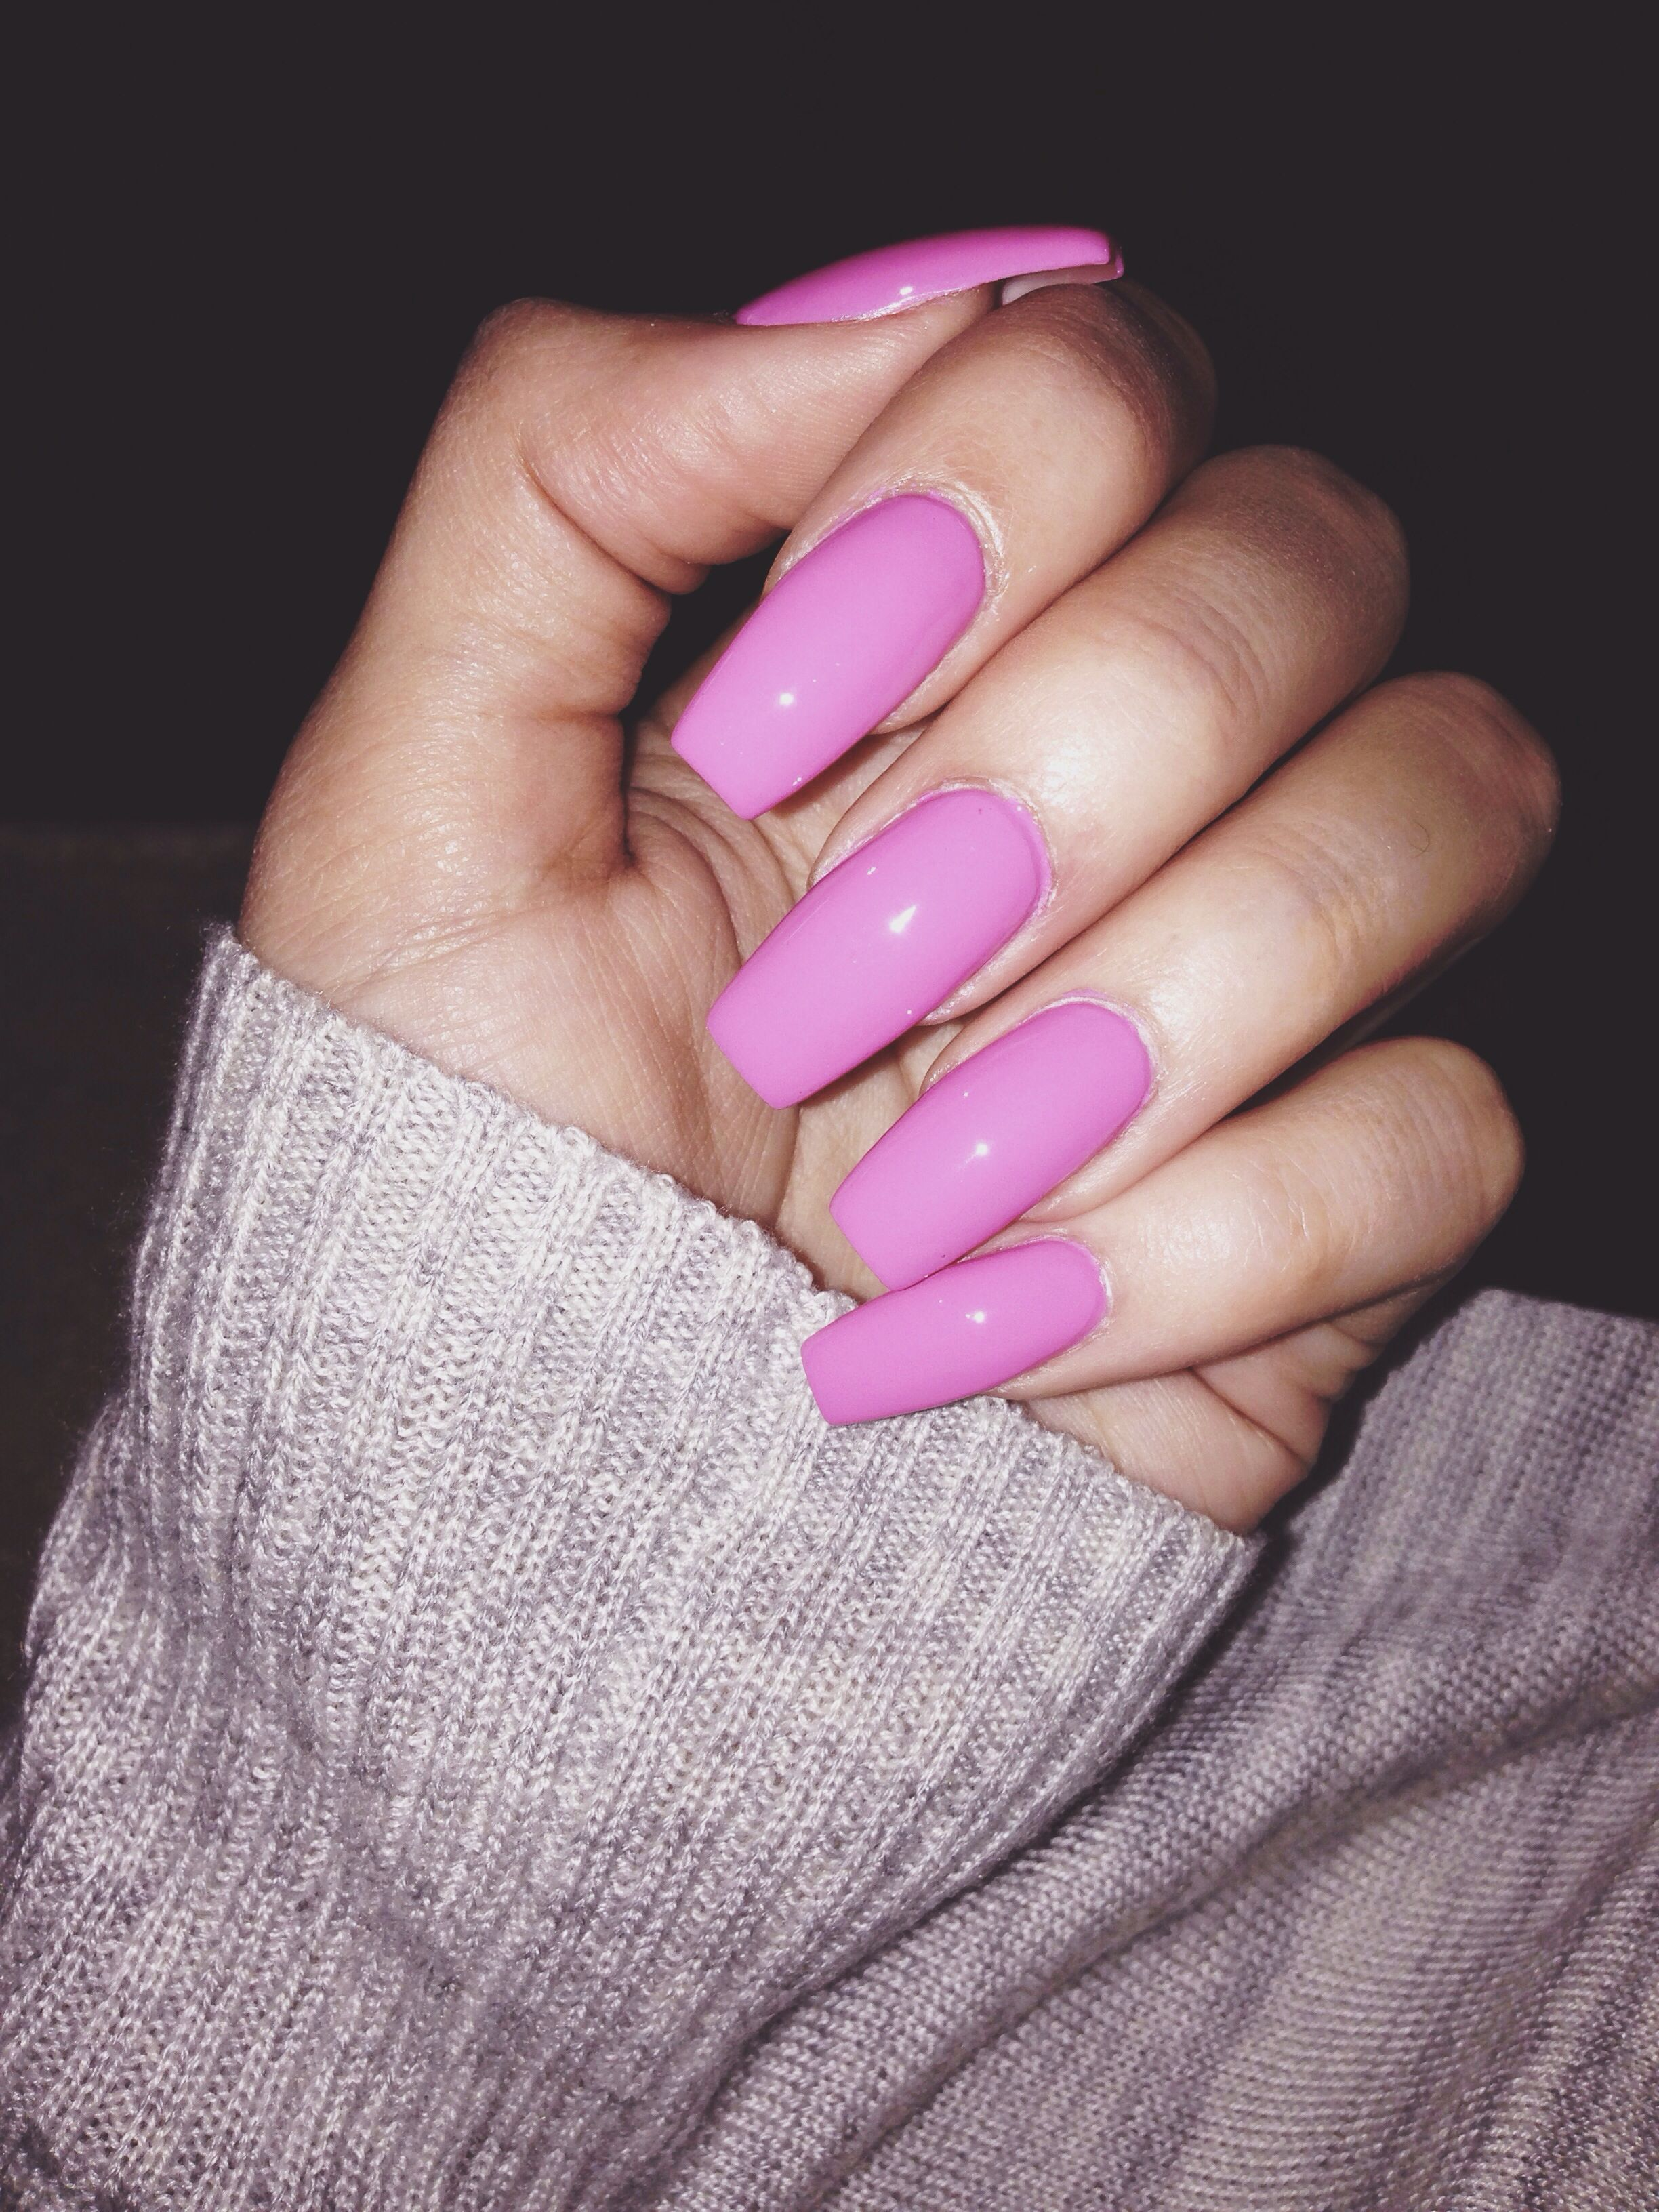 Nail Shape Trends: Long Pink Coffin Shaped Nails.